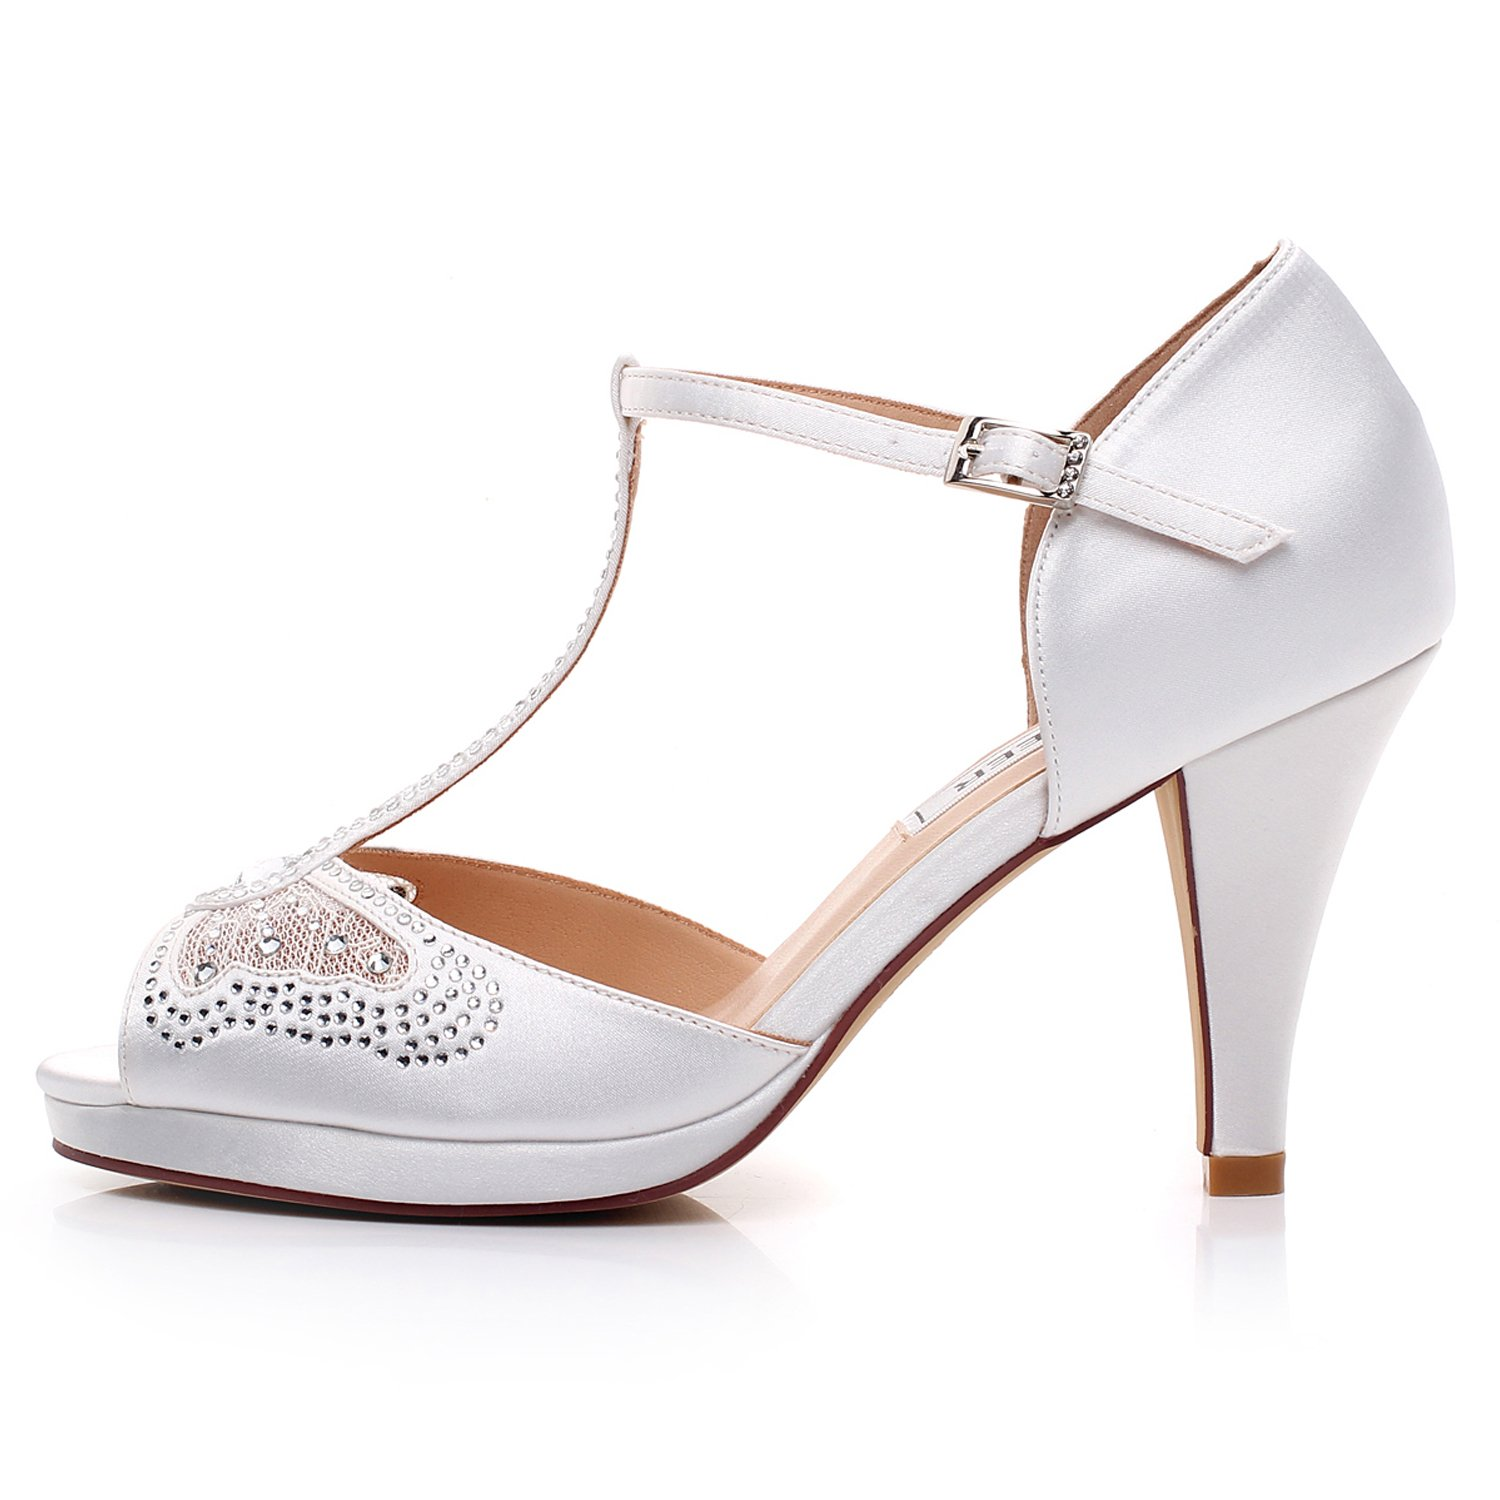 LUXVEER Wedding Sandals Heels for Women ,Silver Rhinestone and Lace Butterfly - Heels 3.5 inch-HK-0192C-Ivory-EU40 Wedding Shoes by LUXVEER (Image #5)